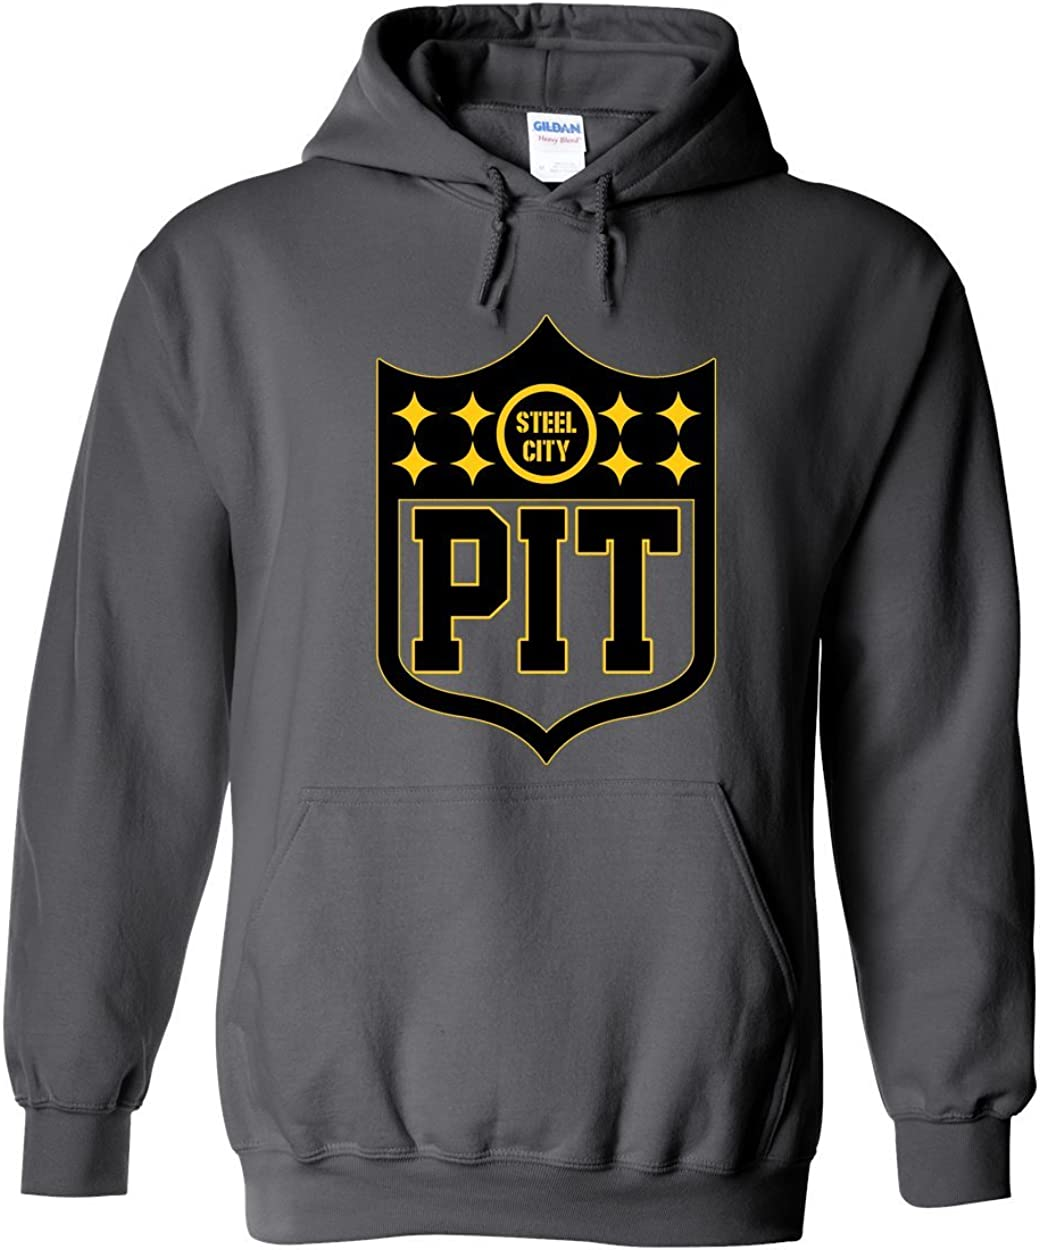 Jessica Pittsburgh Steelers Youth Hoodies Teen Pullover Hooded with Pocket Sweatshirt for Boys Girls